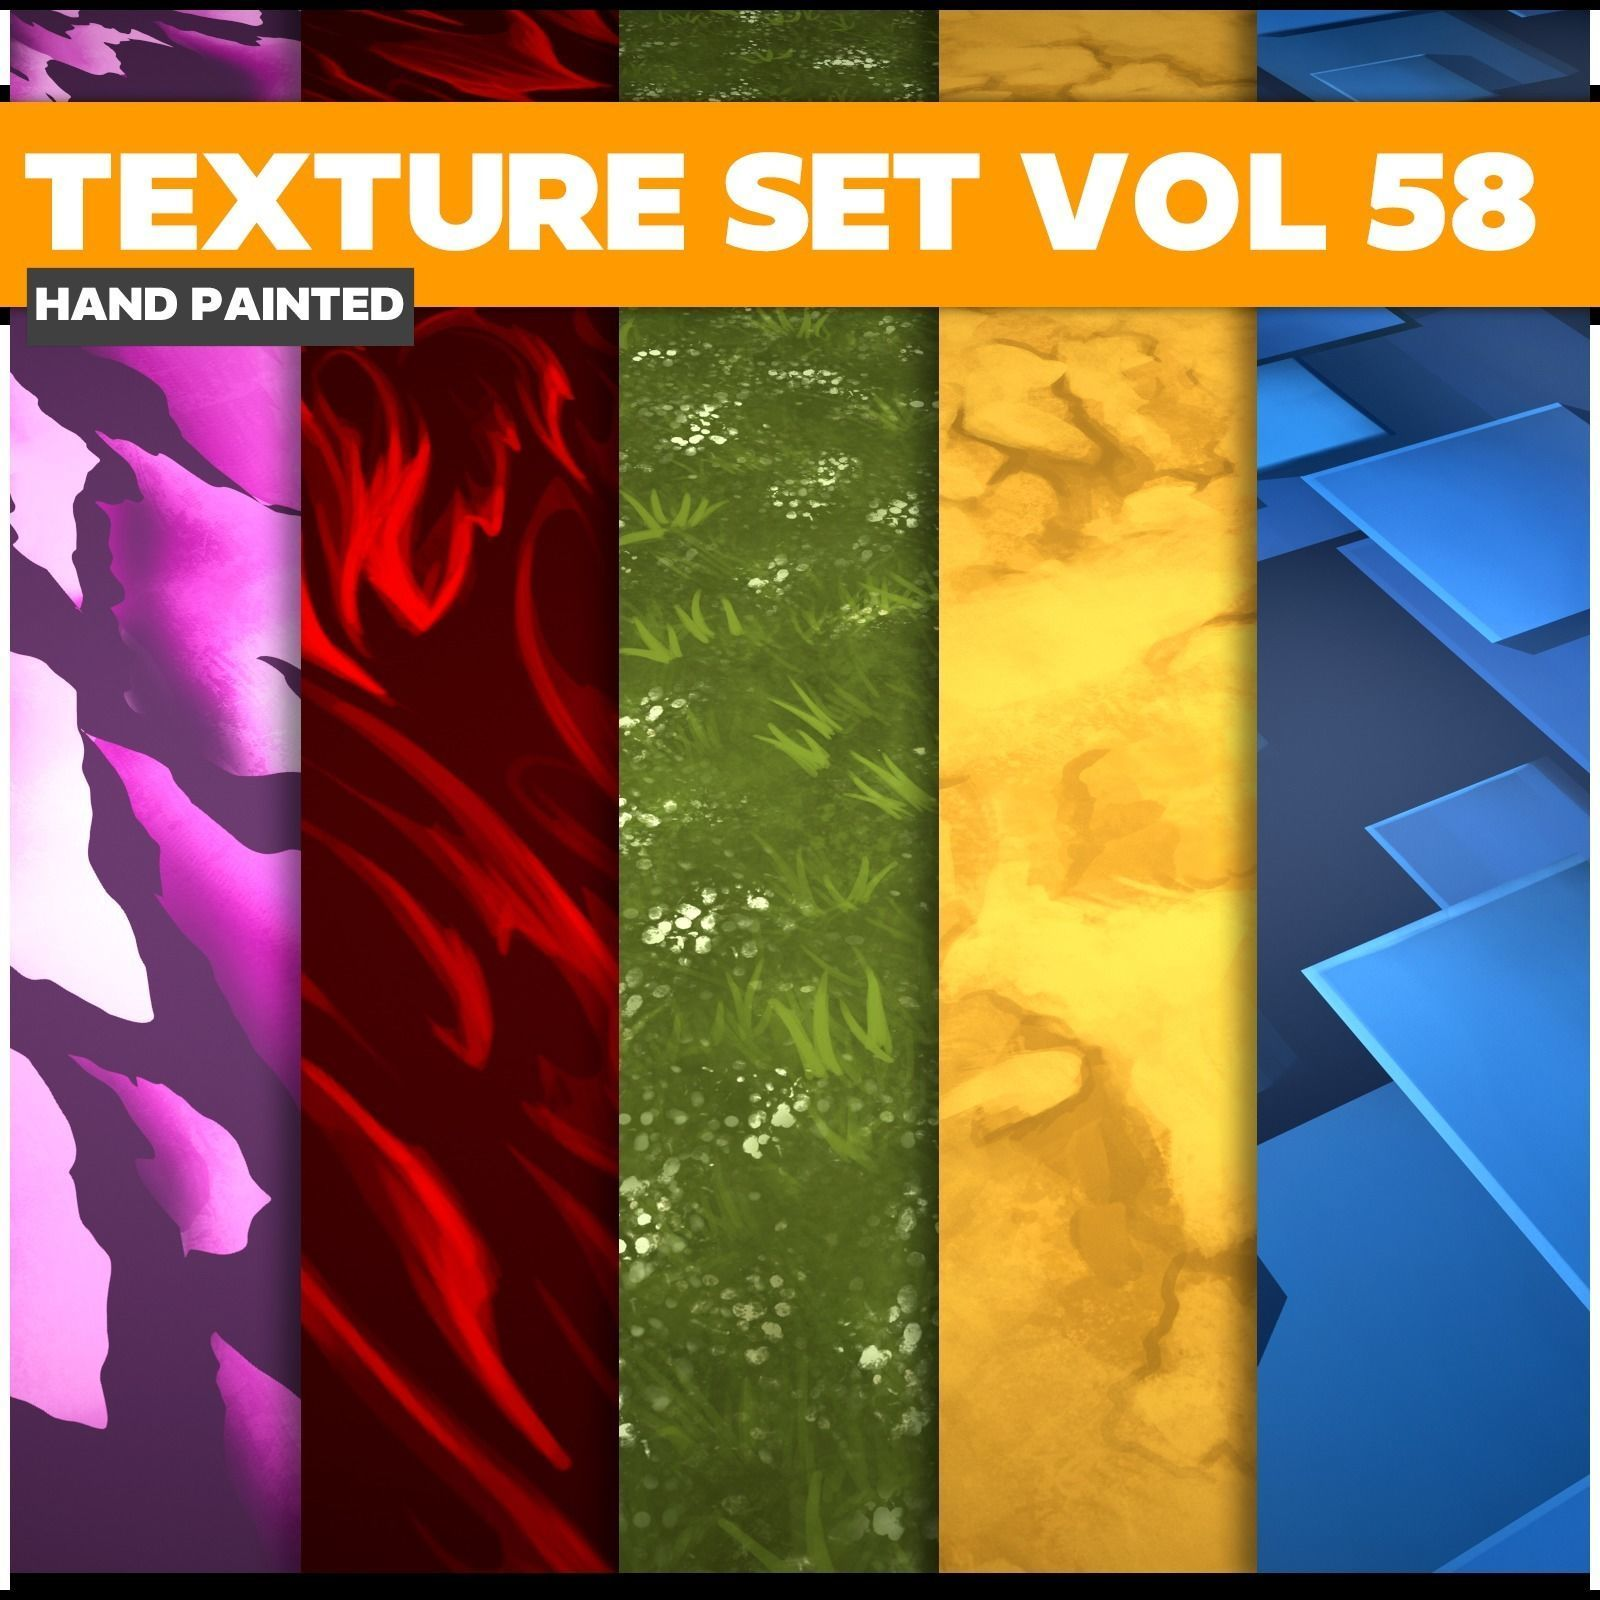 Surface Vol 58 - Game PBR Textures